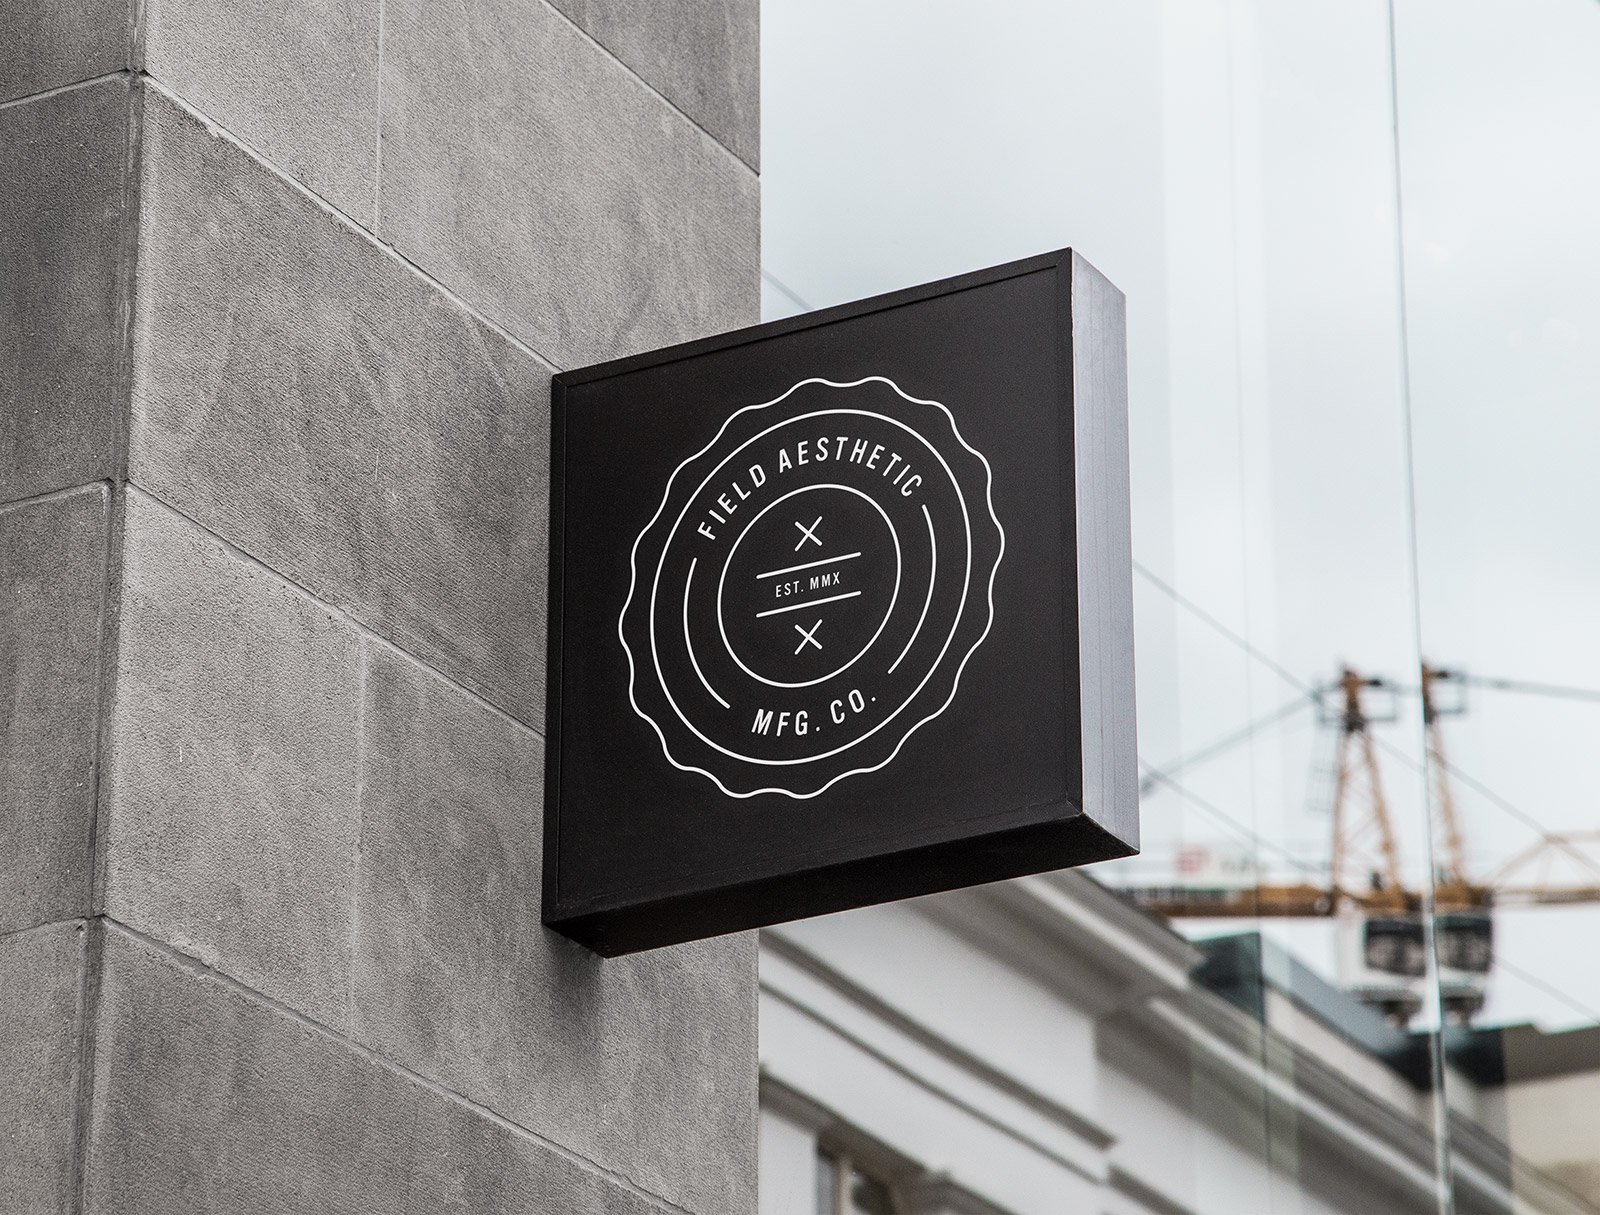 Branding and Signage for Lifestyle Brand